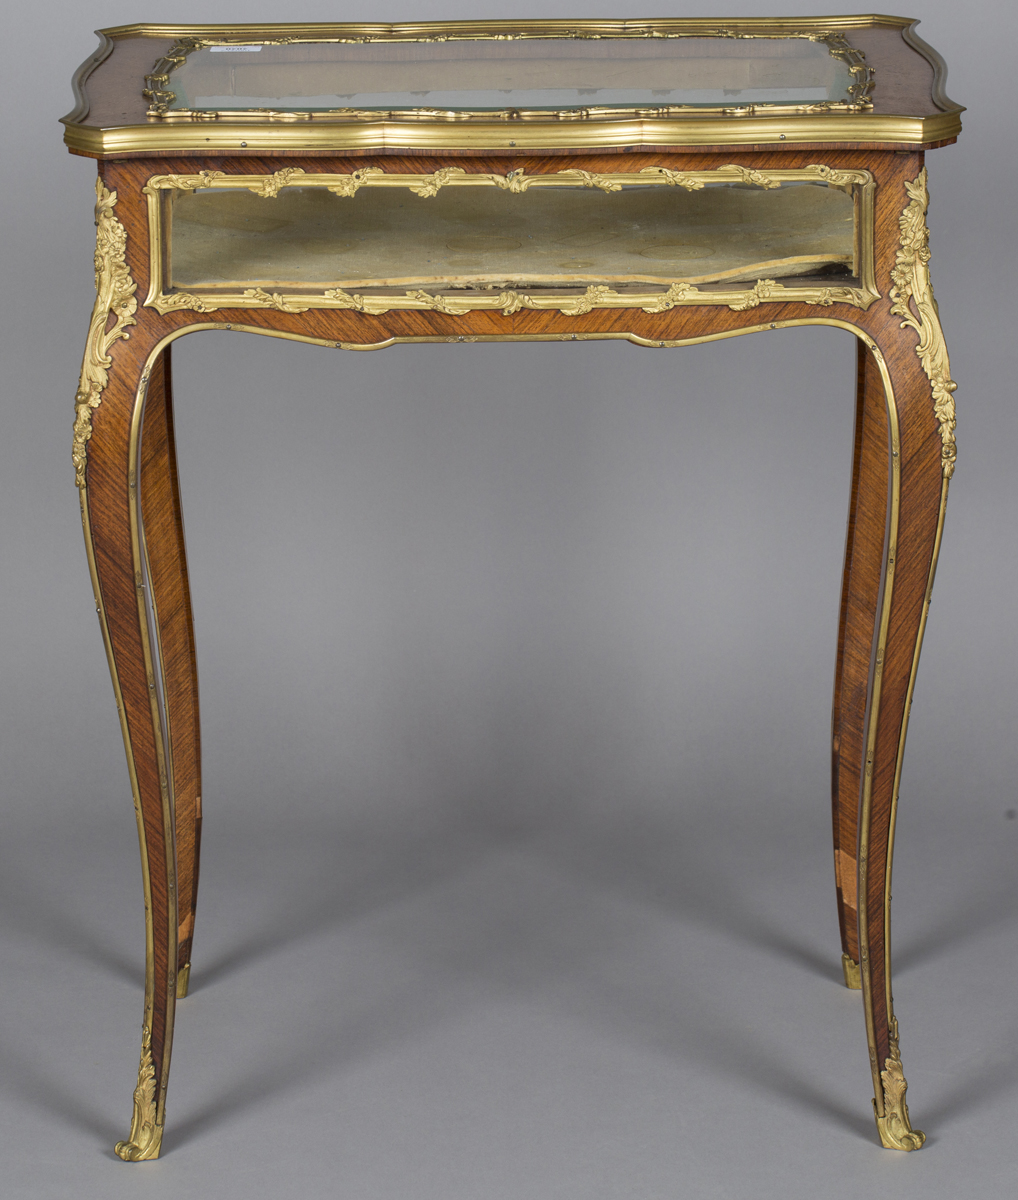 A good late 19th century Louis XV style kingwood bijouterie table with applied ormolu mounts, the - Image 4 of 9